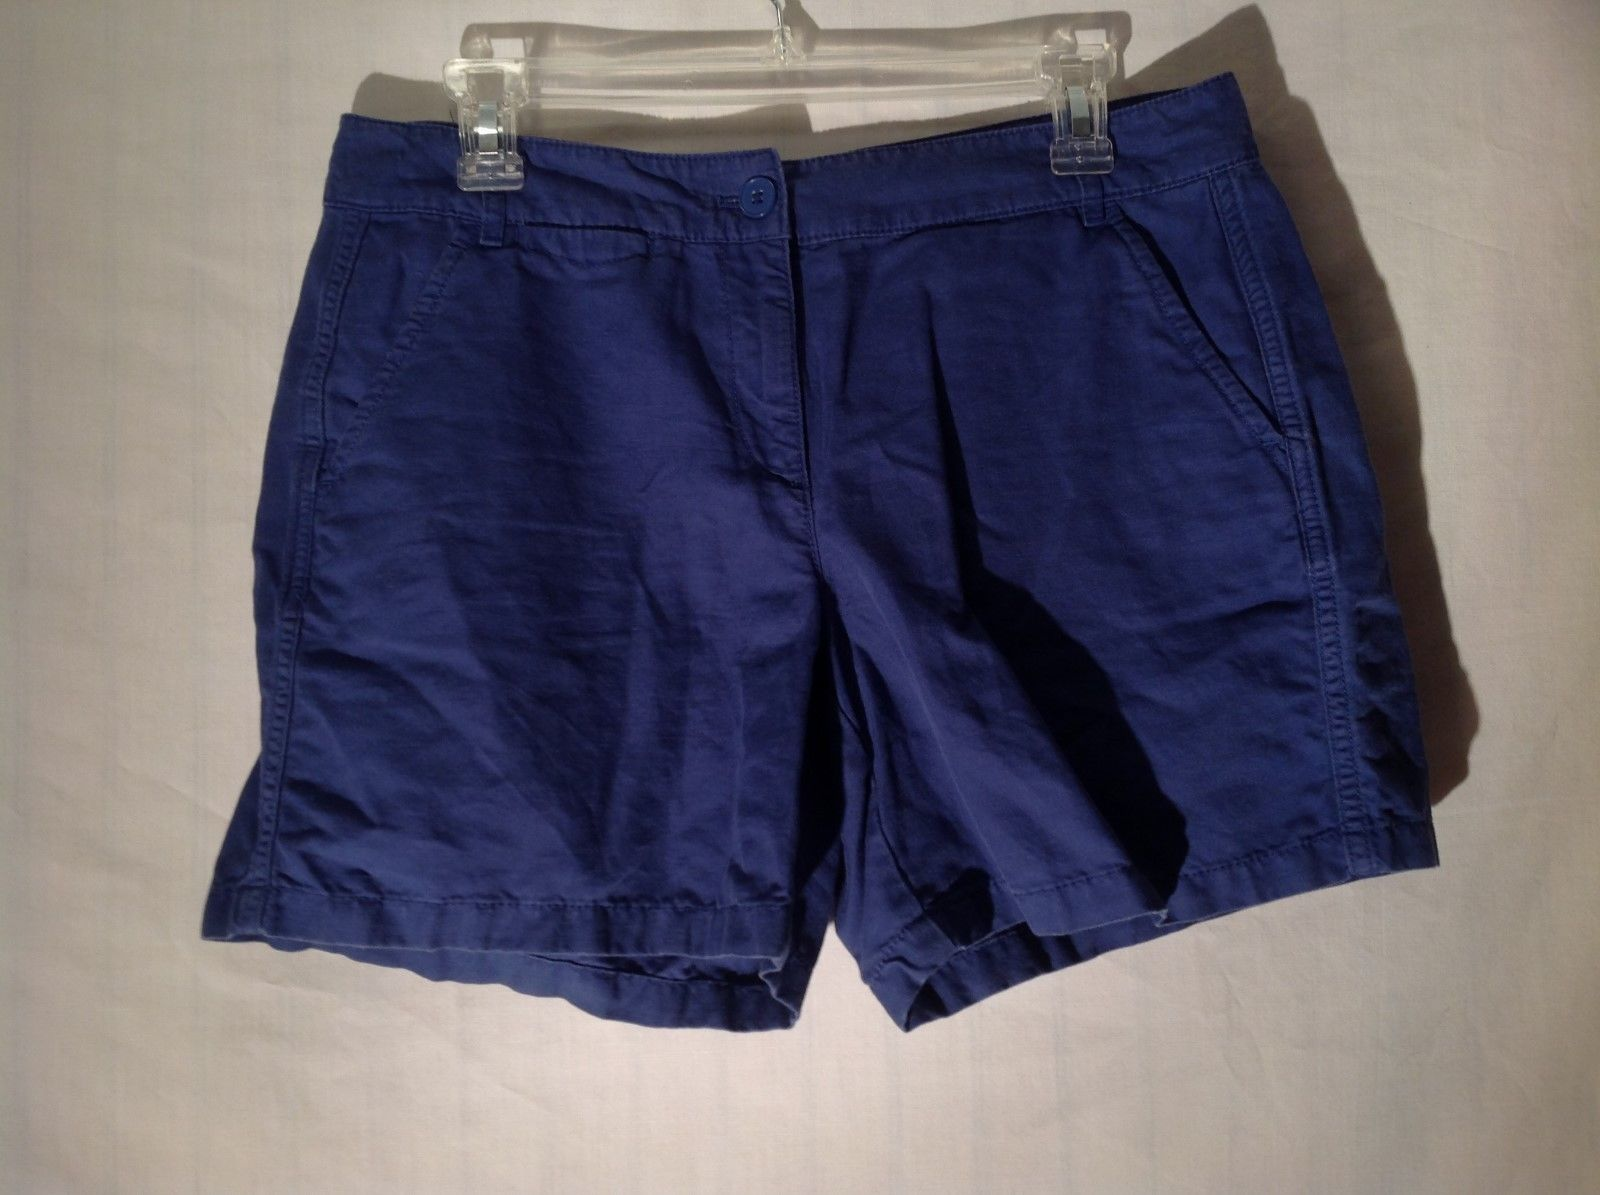 Ann Taylor LOFT Deep Blue Colored Shorts Size 6